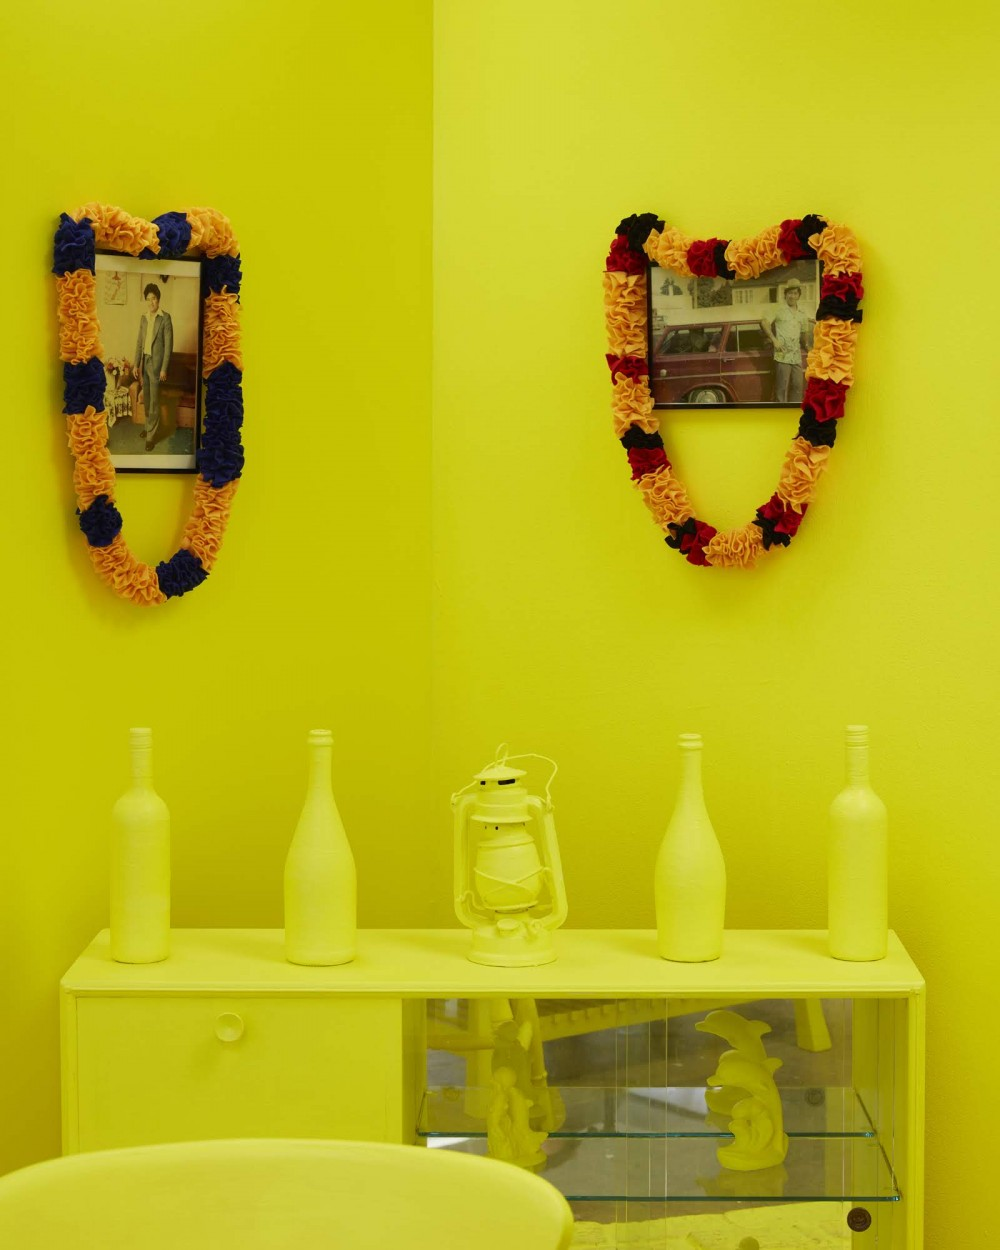 *The River Remains; ake tonu atu*, 2018   9. *The Yellow Brick Road Home* (detail), Faamele Etuale, household items, bricks, felt lei, and old family photos, 2018.   Image: Sam Hartnett 2018